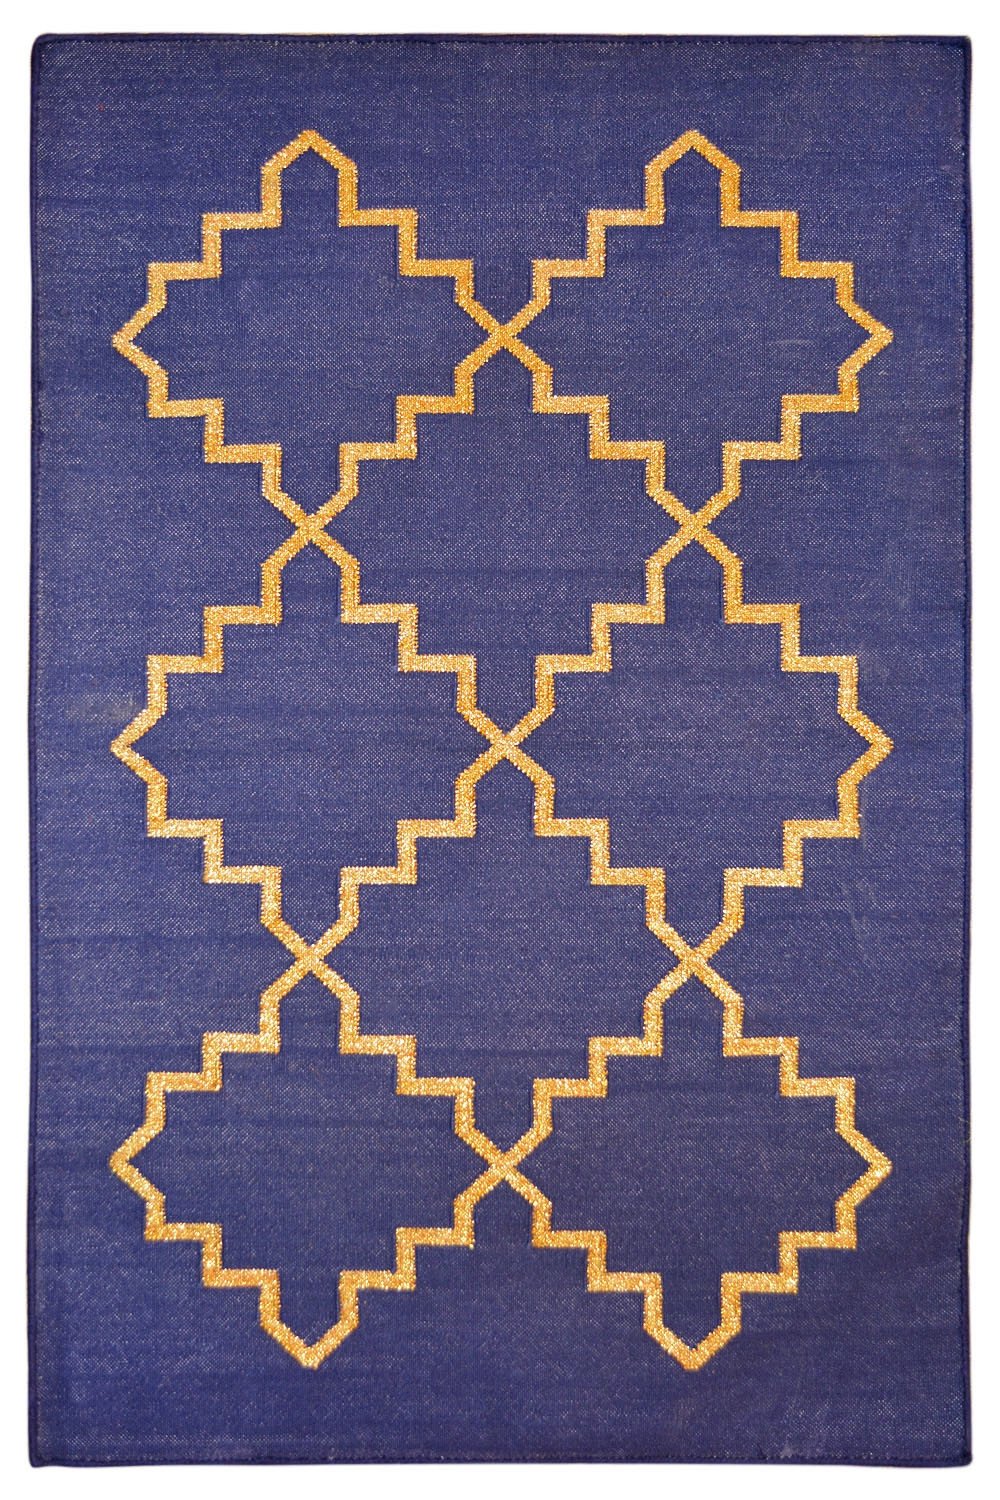 Handmade Cotton Lurix Durry At Best Price Online From Rugs